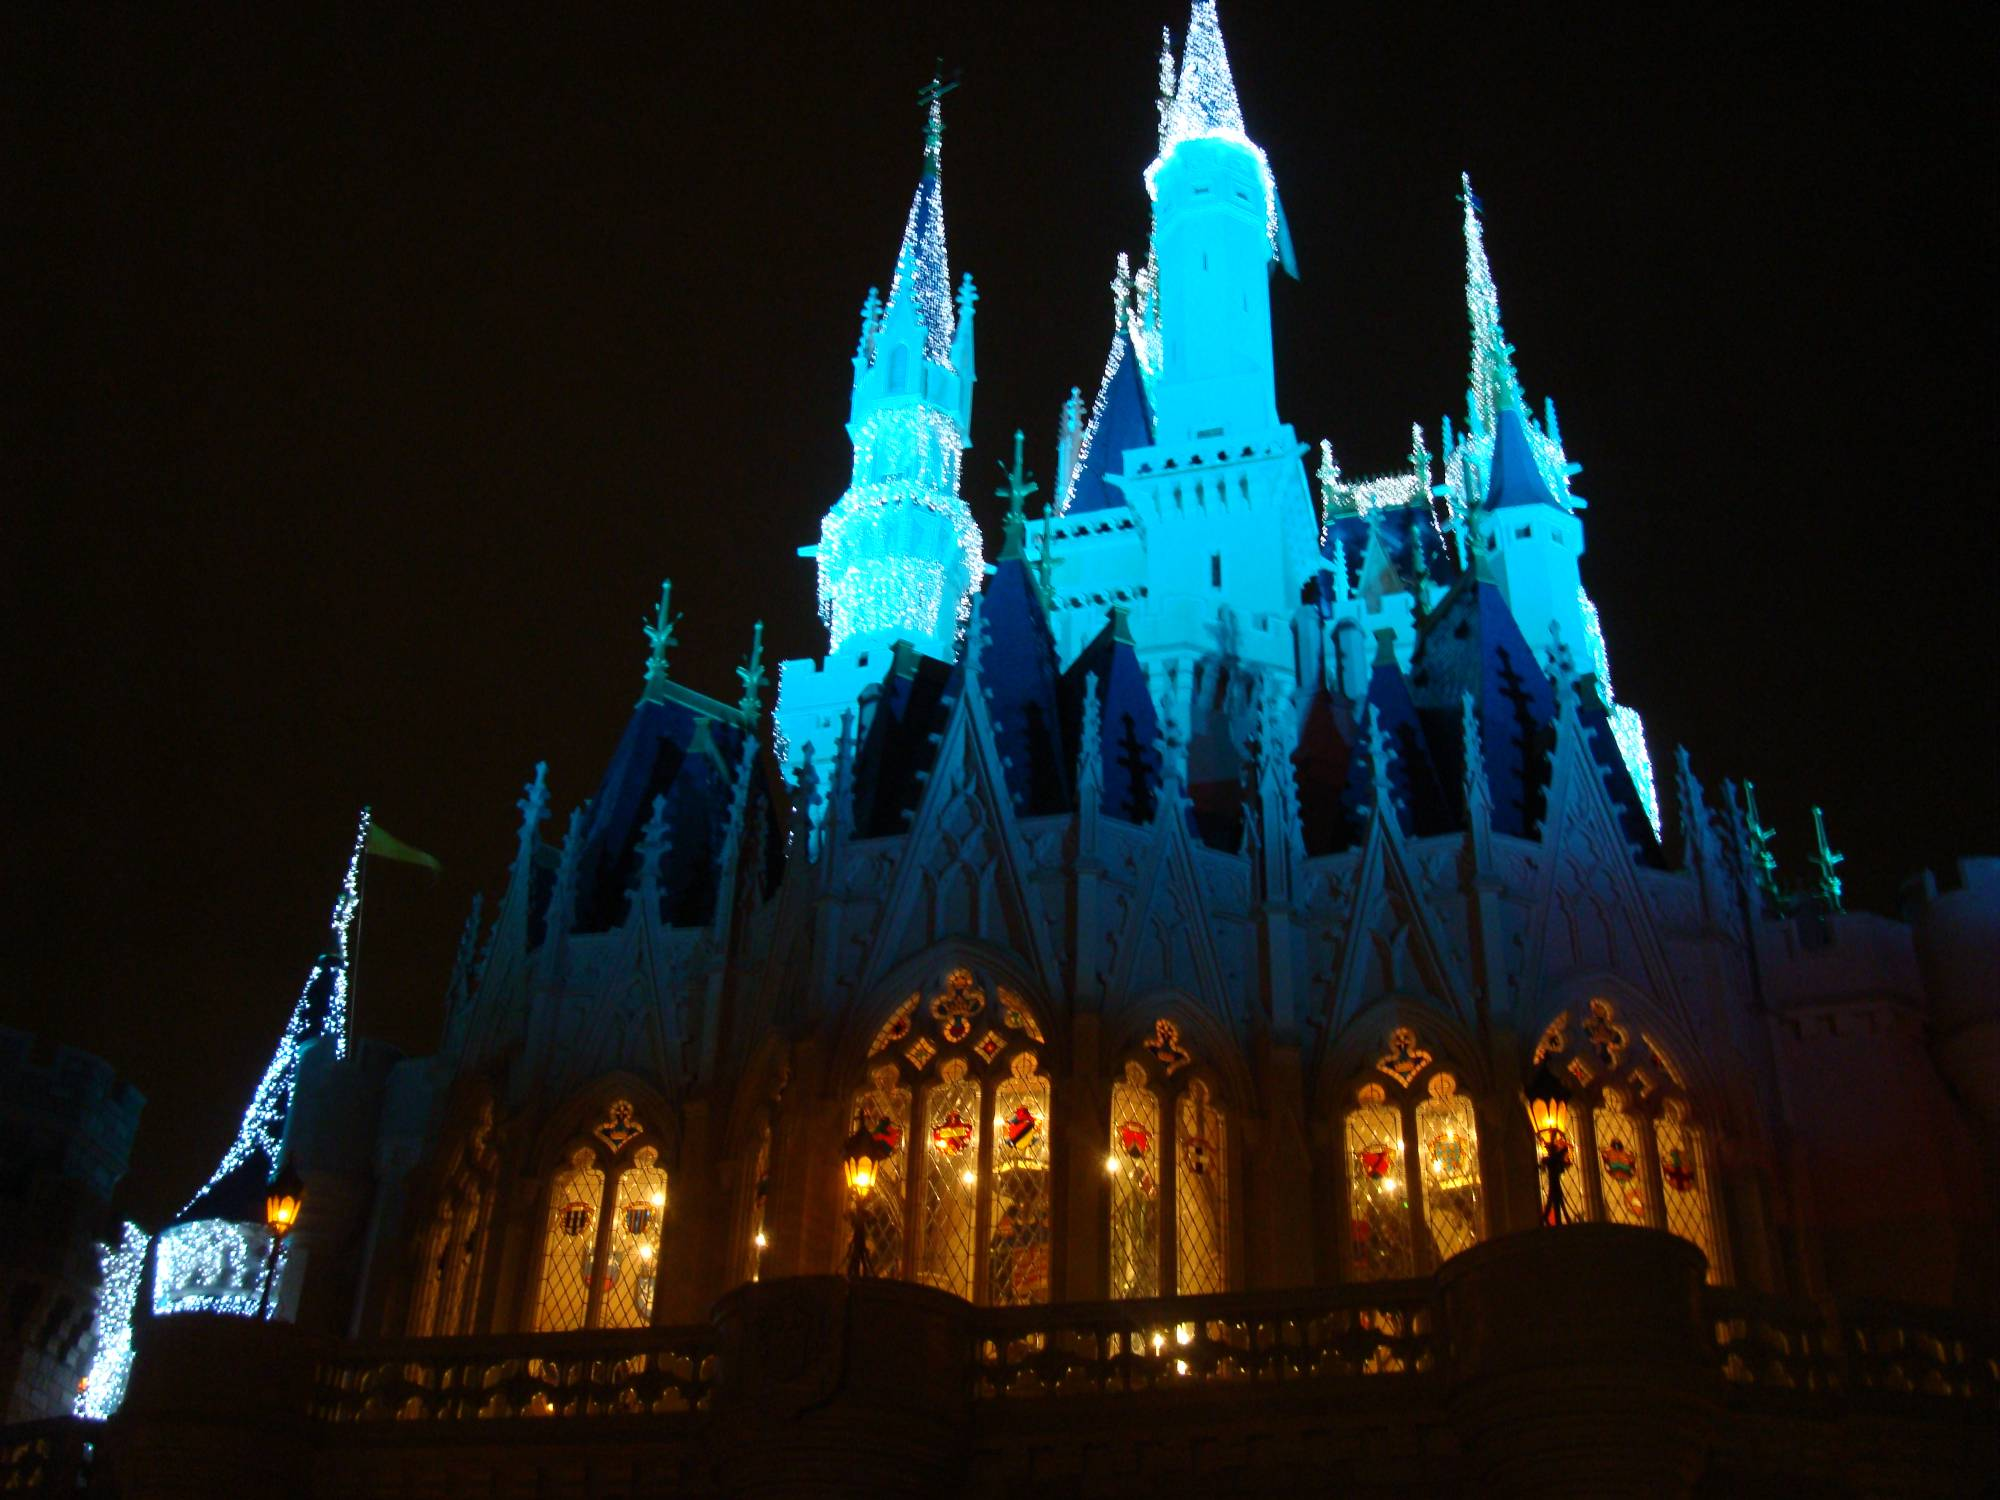 Magic Kingdom - Cinderella Castle at night